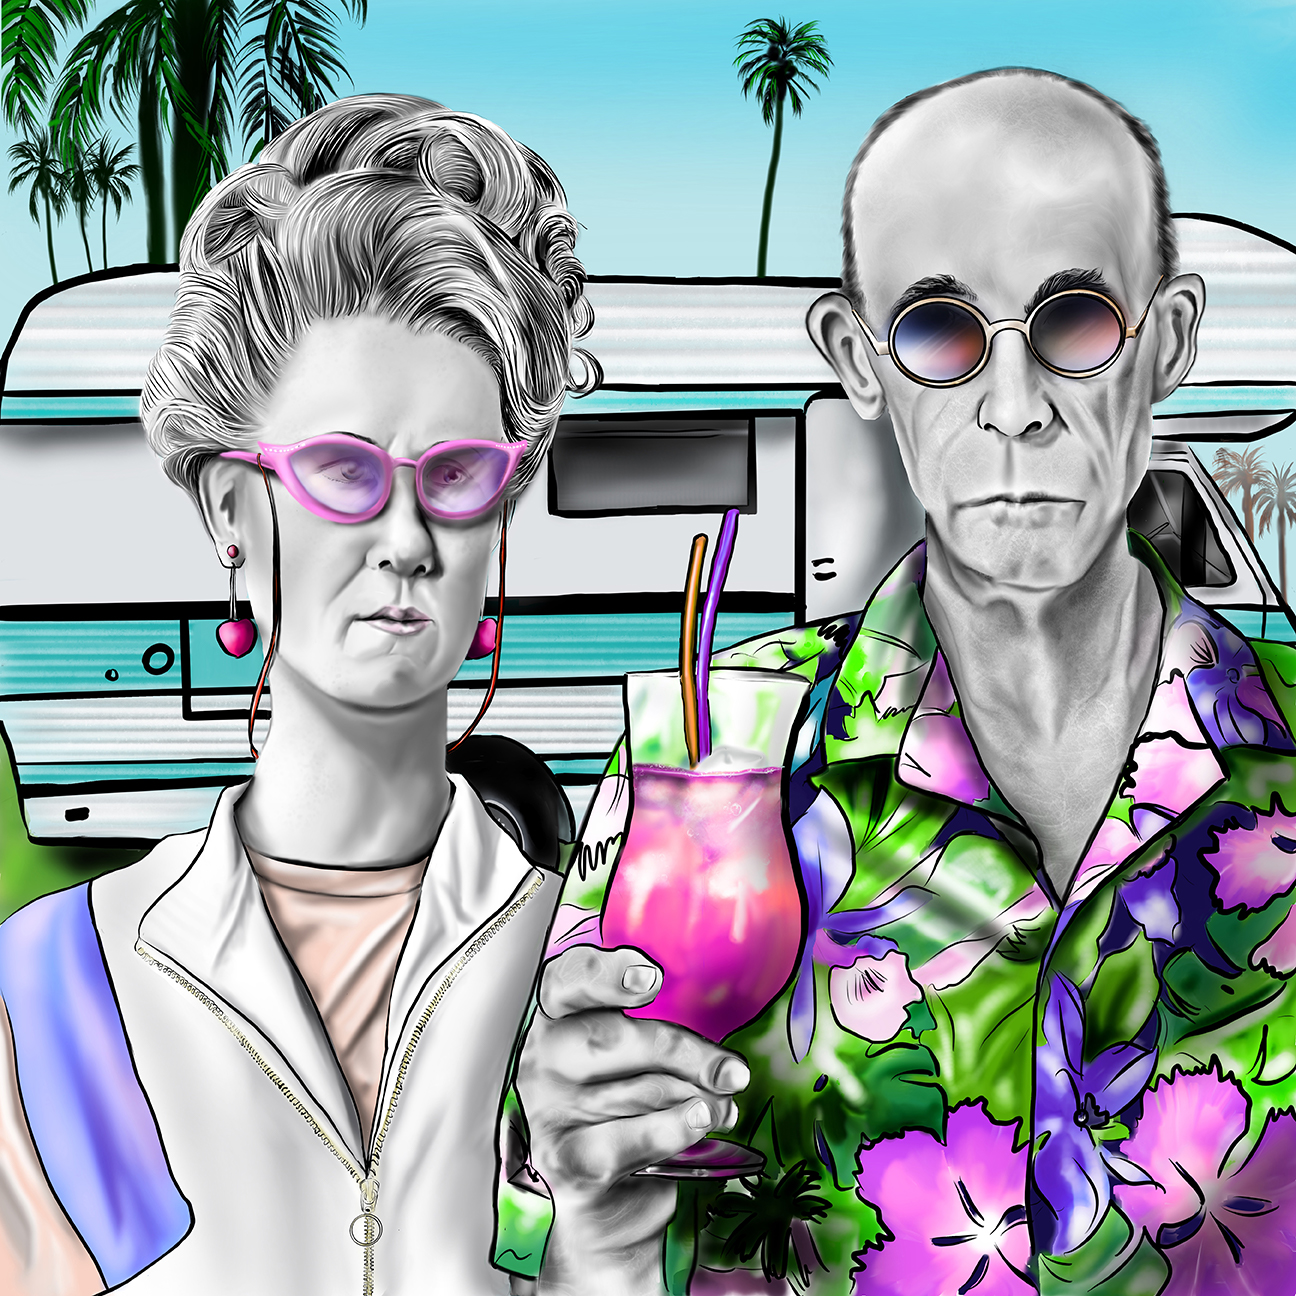 A parody image of the painting American Gothic.  The couple is standing in front of a camper trailer and dressed in a hawaiian shirt and track suit.